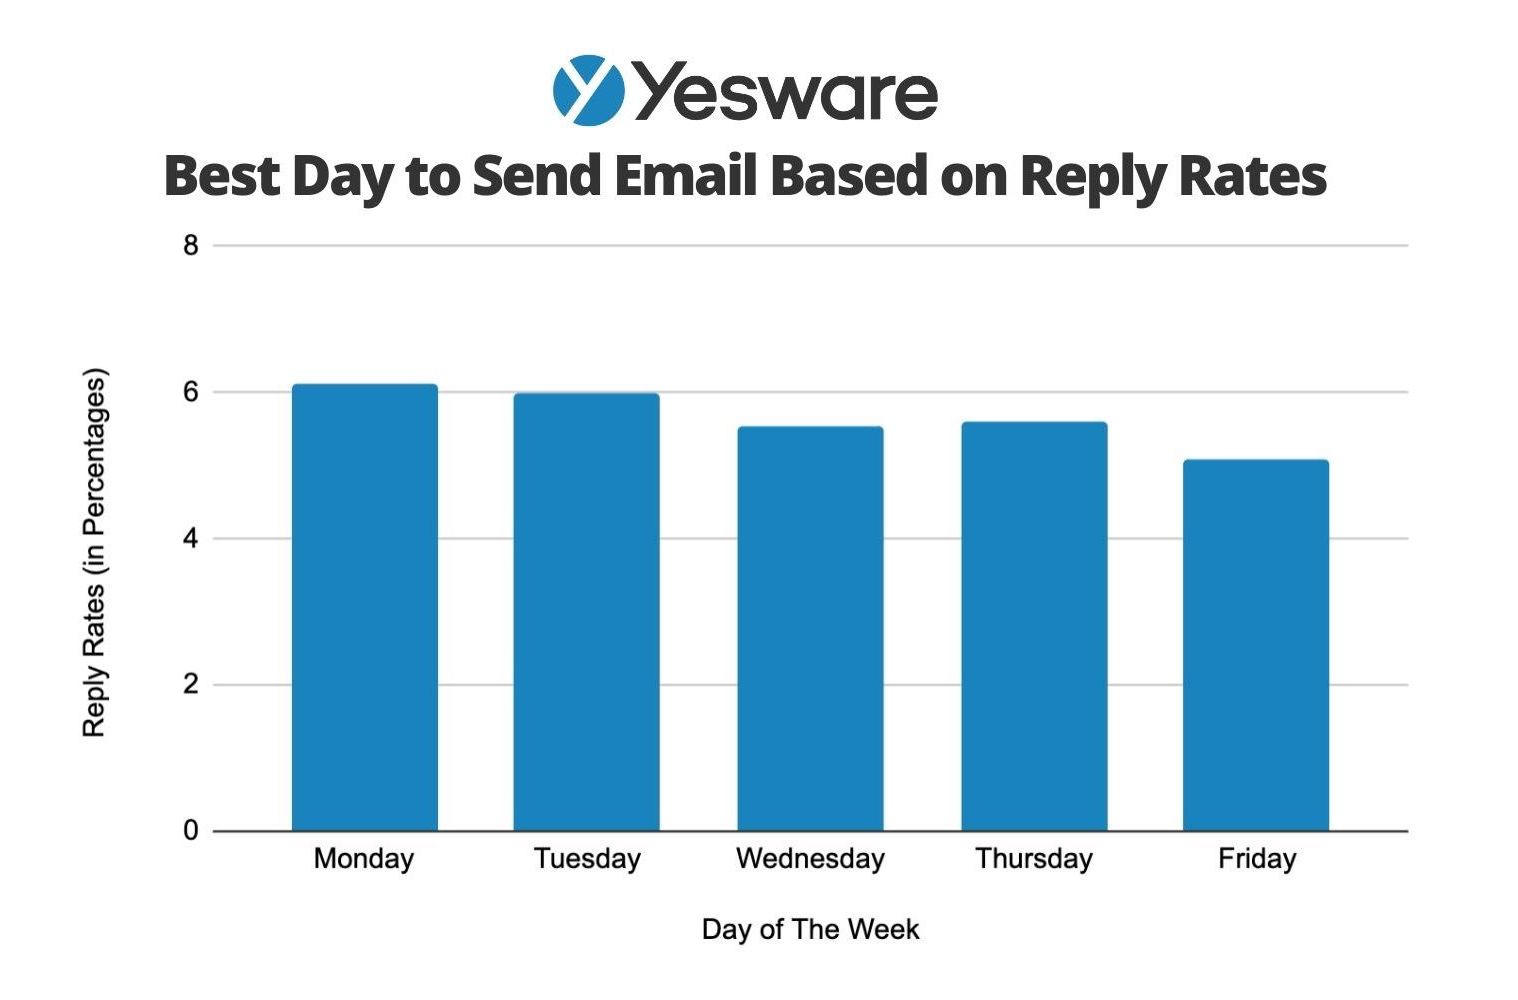 best day to send templates based on response rates